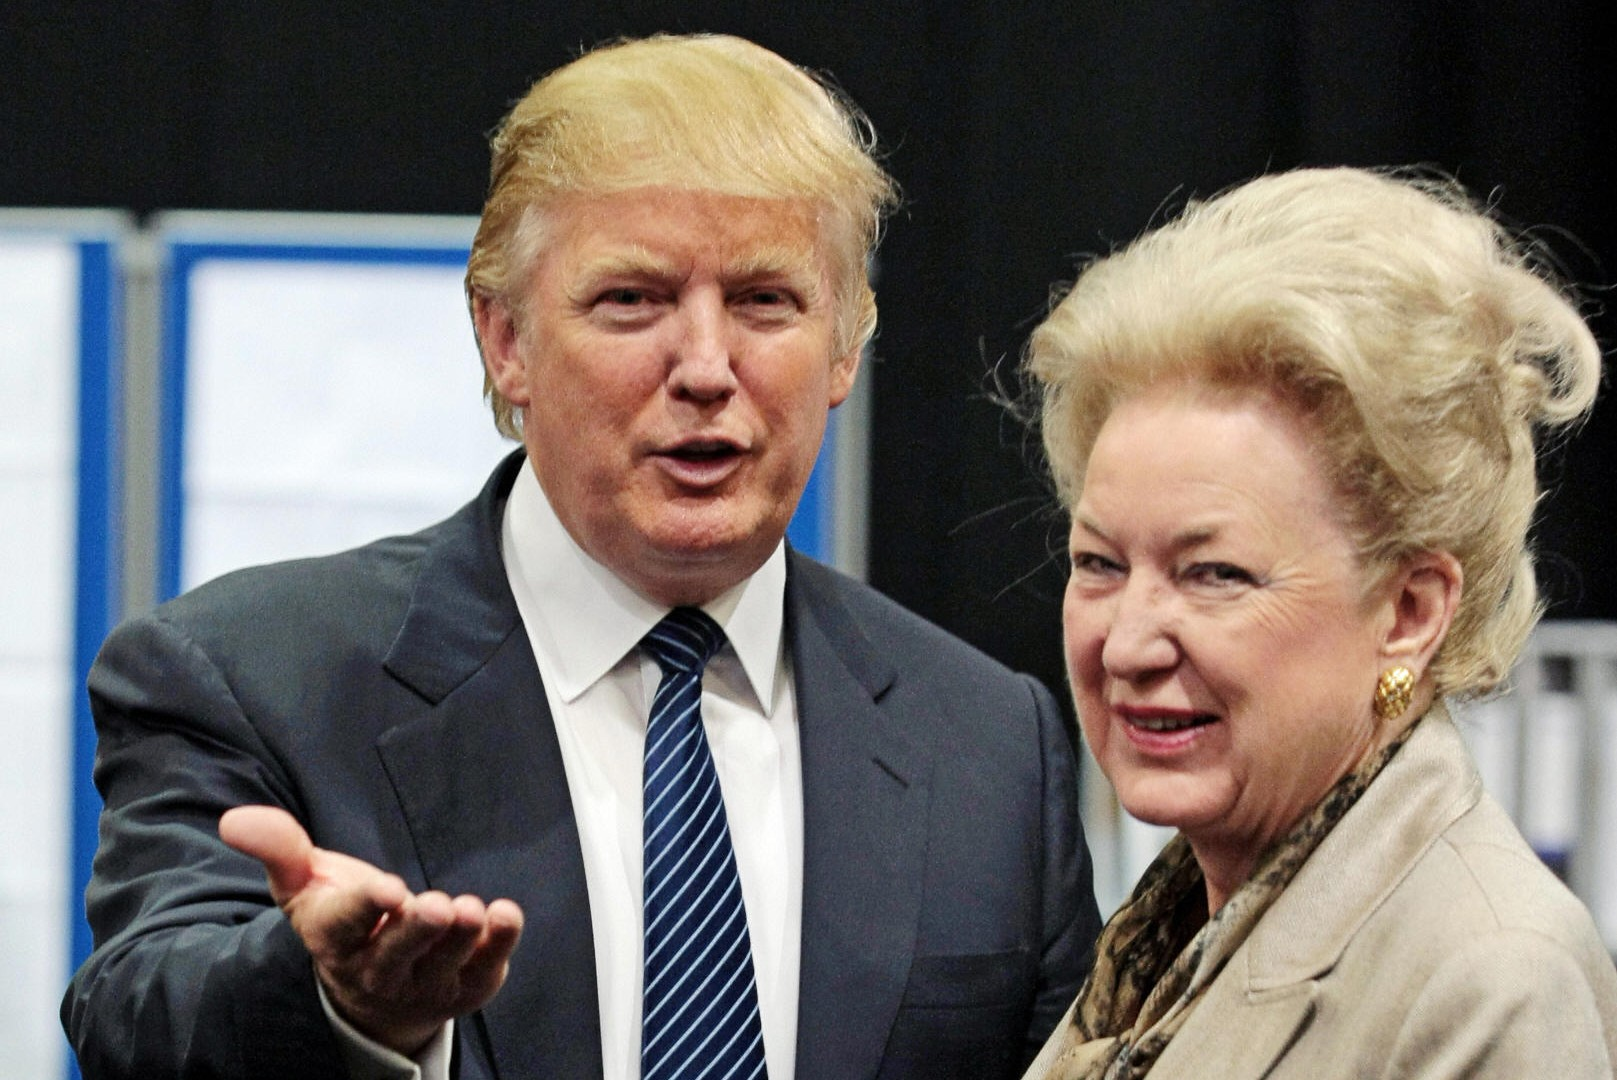 Donald Trump is pictured with his sister, Maryanne Trump Barry, as they adjourn for lunch during a public inquiry over his plans to build a golf resort near Aberdeen, at the Aberdeen Exhibition & Conference centre, Scotland, on June 10, 2008. (ED Jones/AFP via Getty Images)